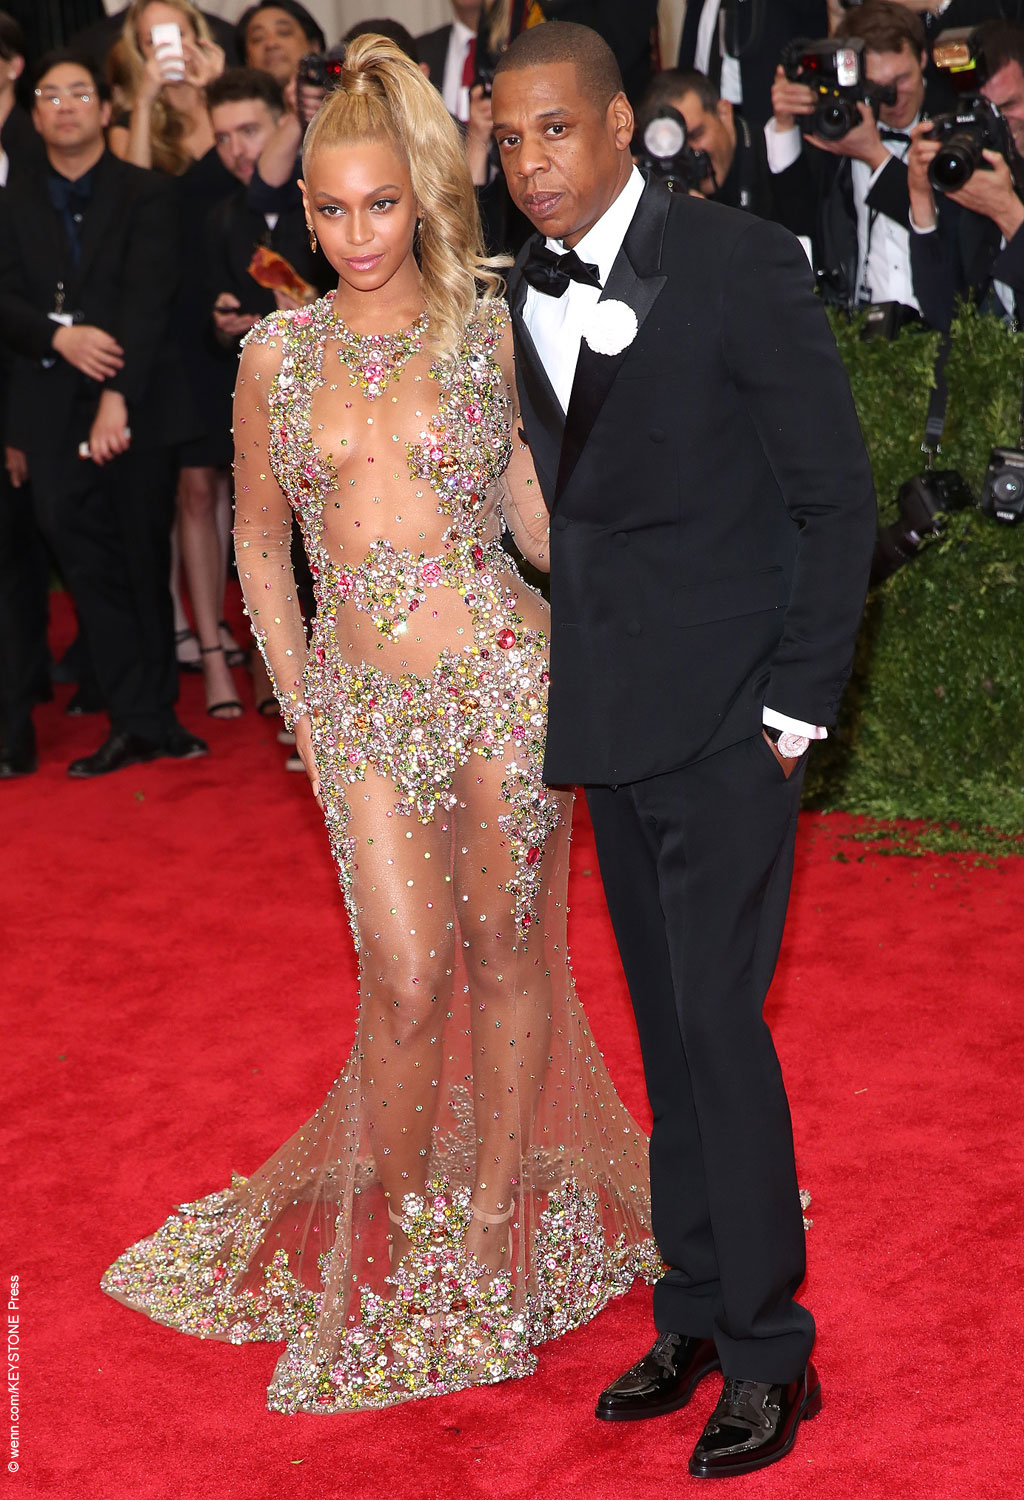 Beyoncé showed off her curves, walking the red carpet with husband Jay Z. She rocked a curled high ponytail and a sheer Givenchy gown, adorned with floral appliques and stones covering the parts that needed to be covered.